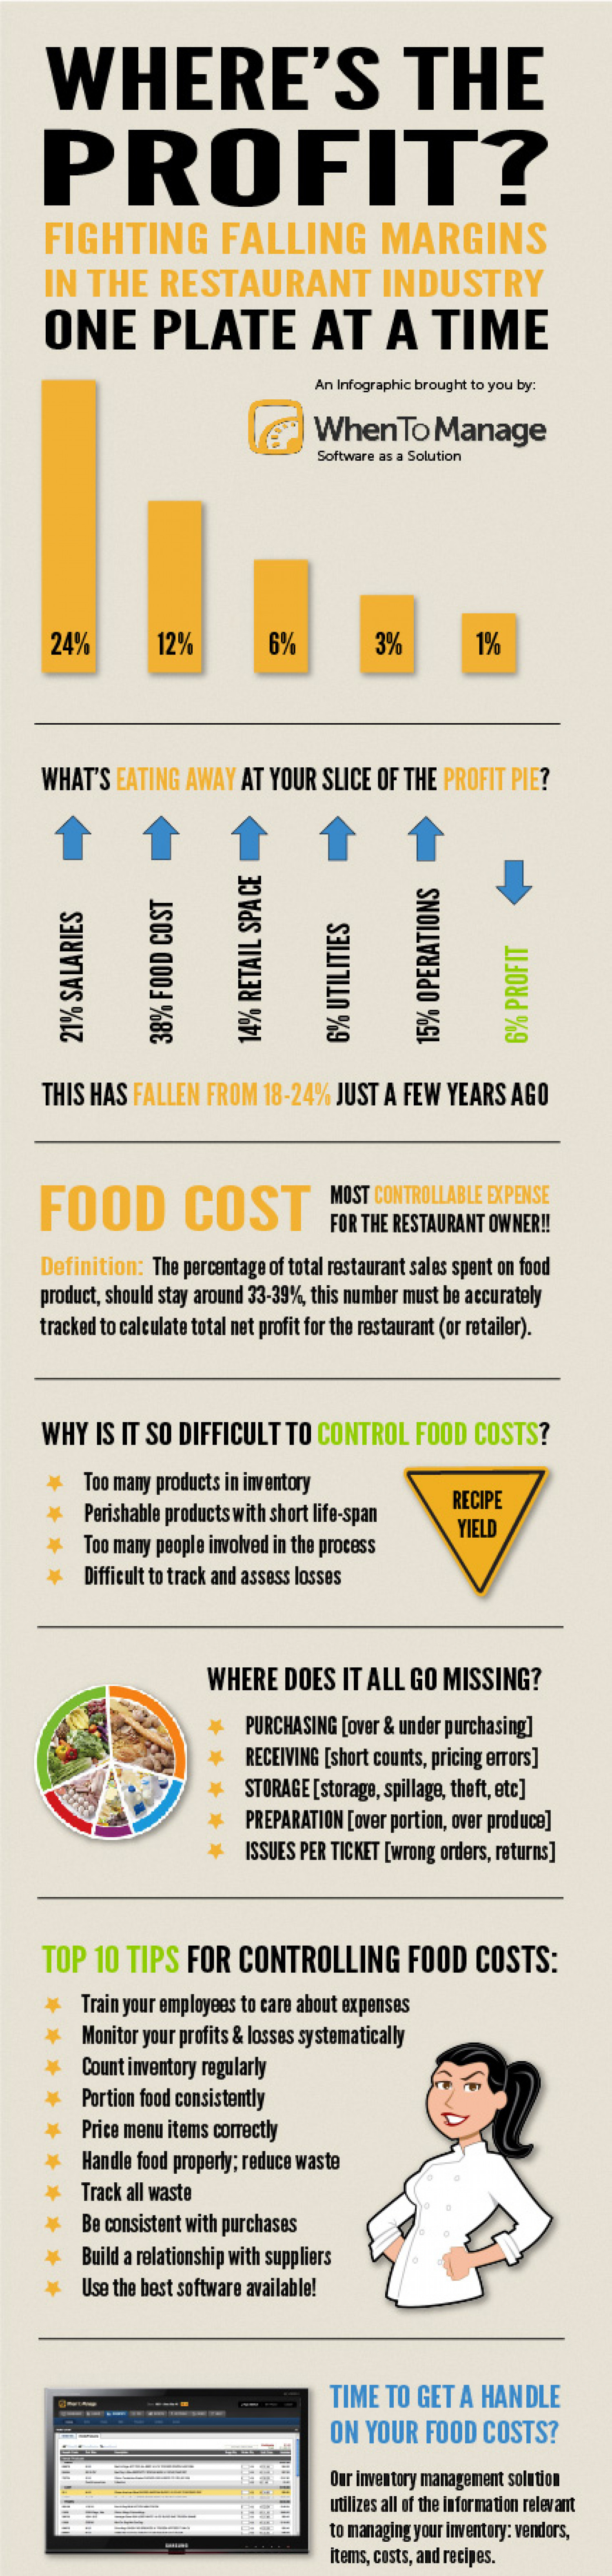 Control Food Costs Infographic